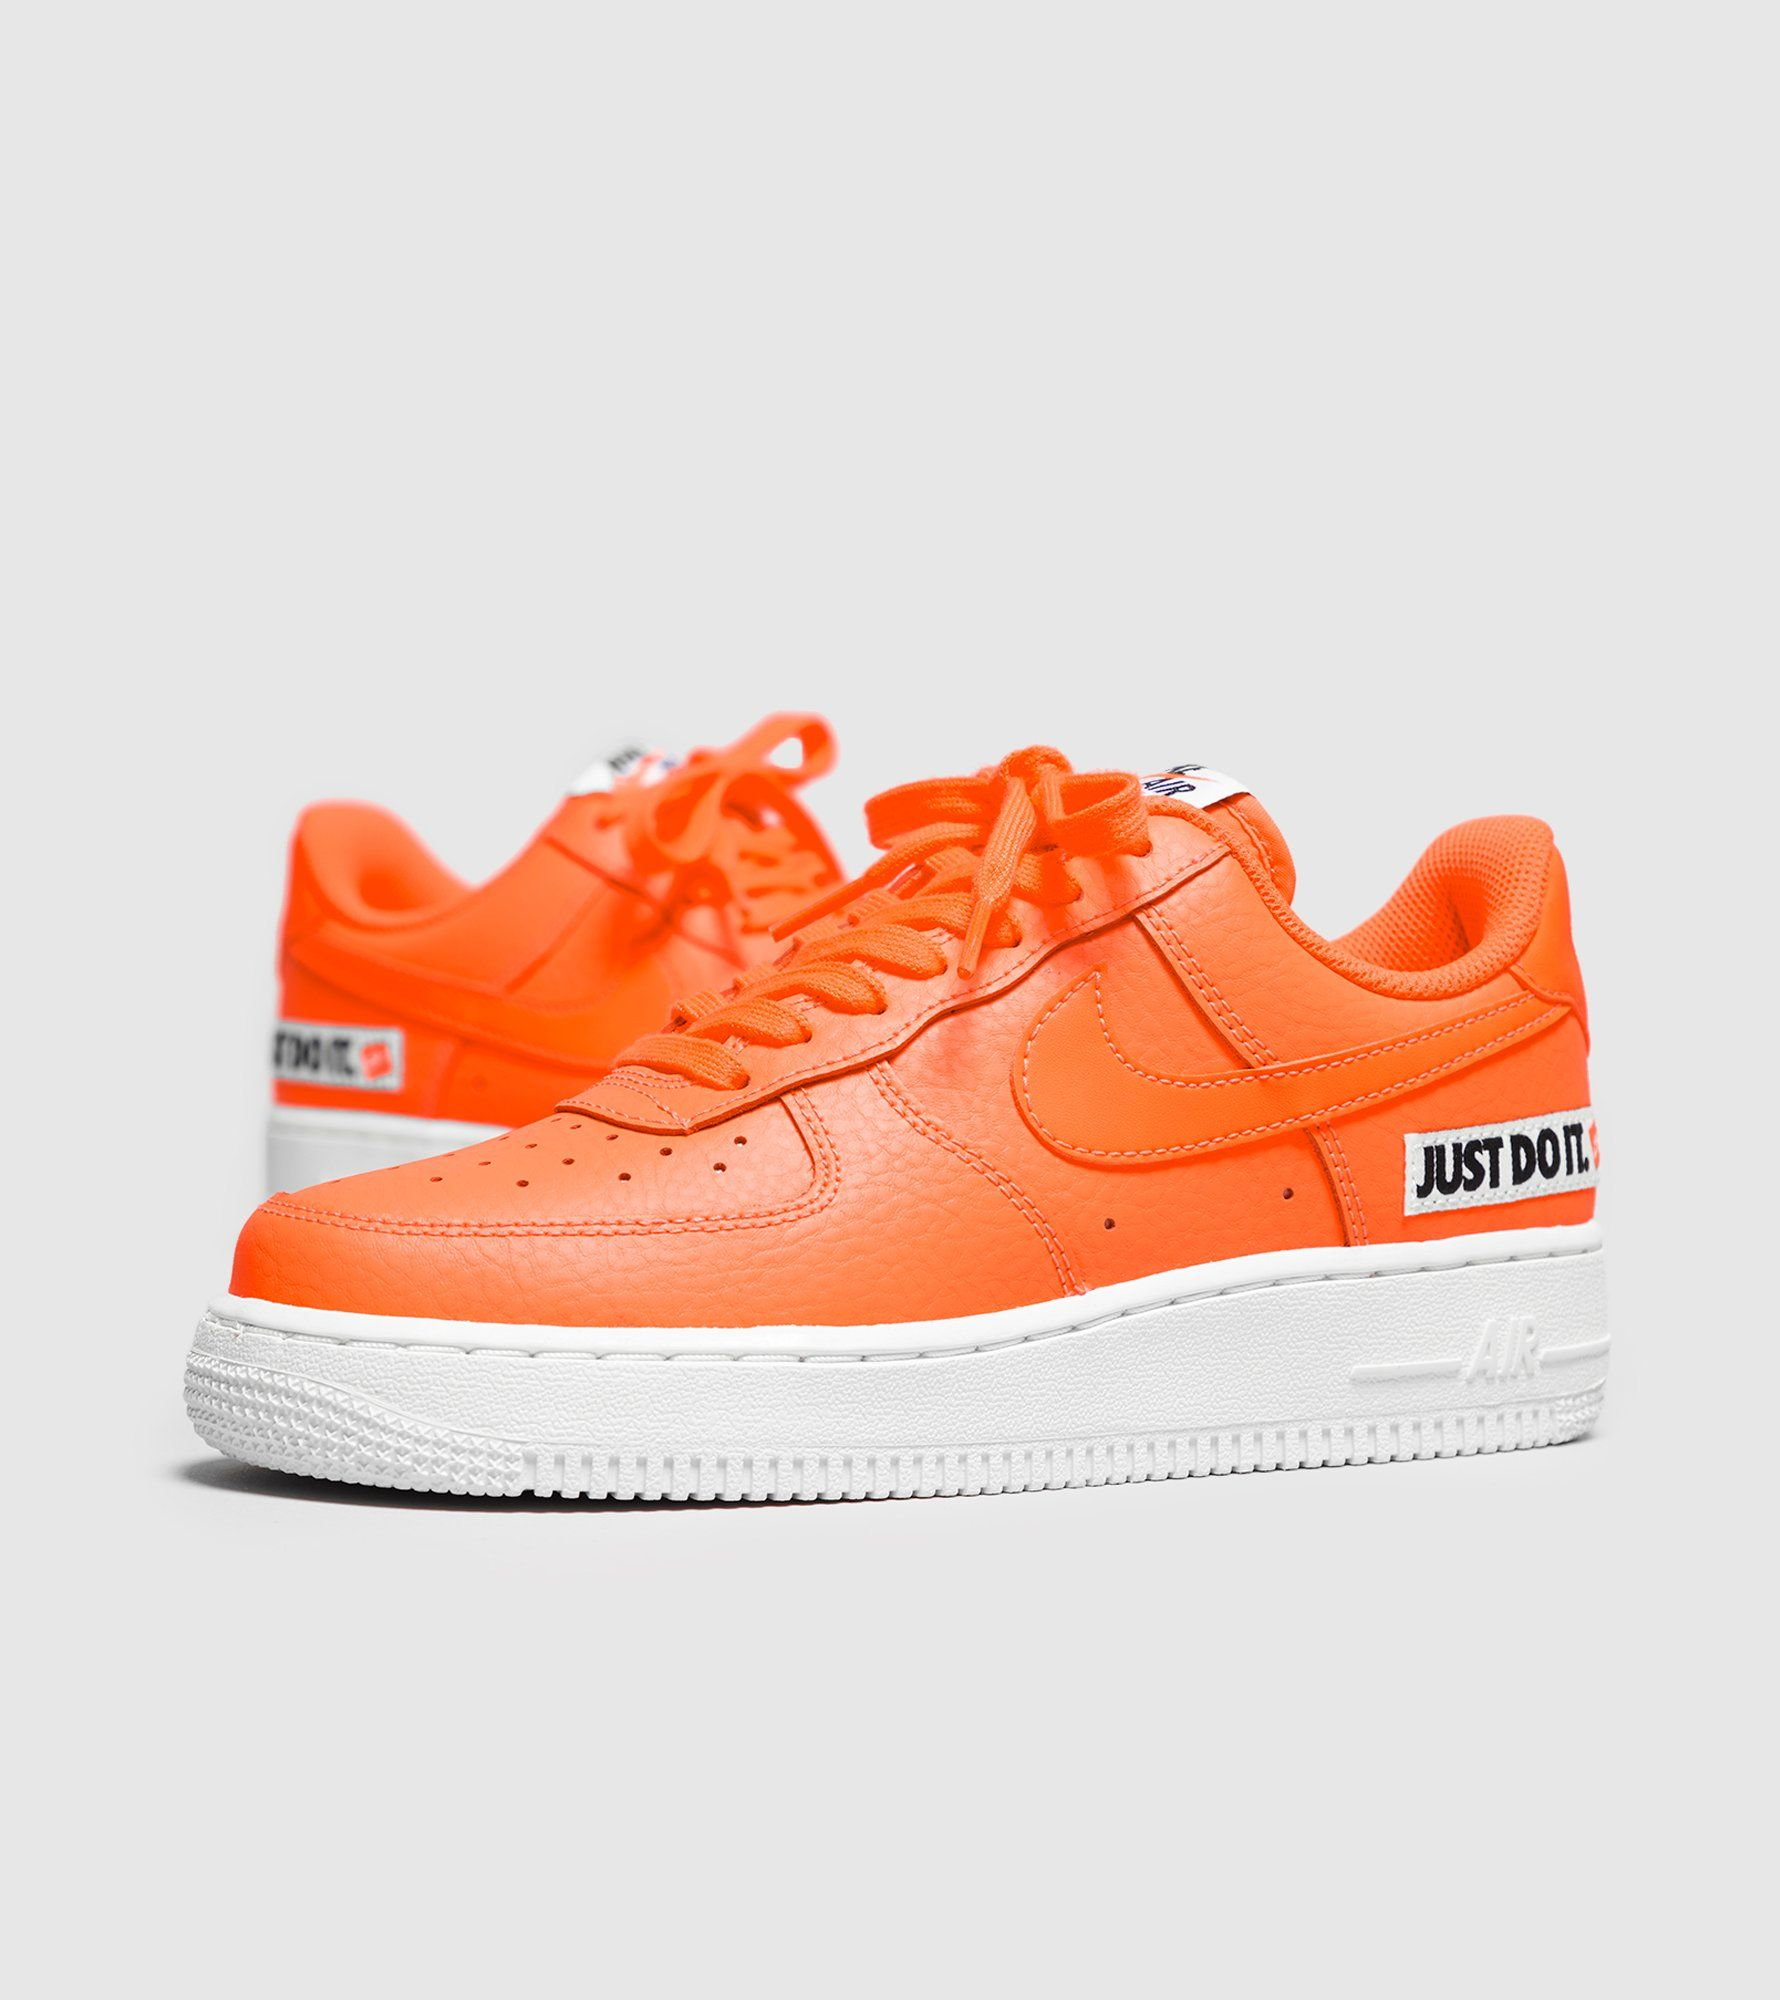 Nike Air Force 1 'Just Do It' Women's